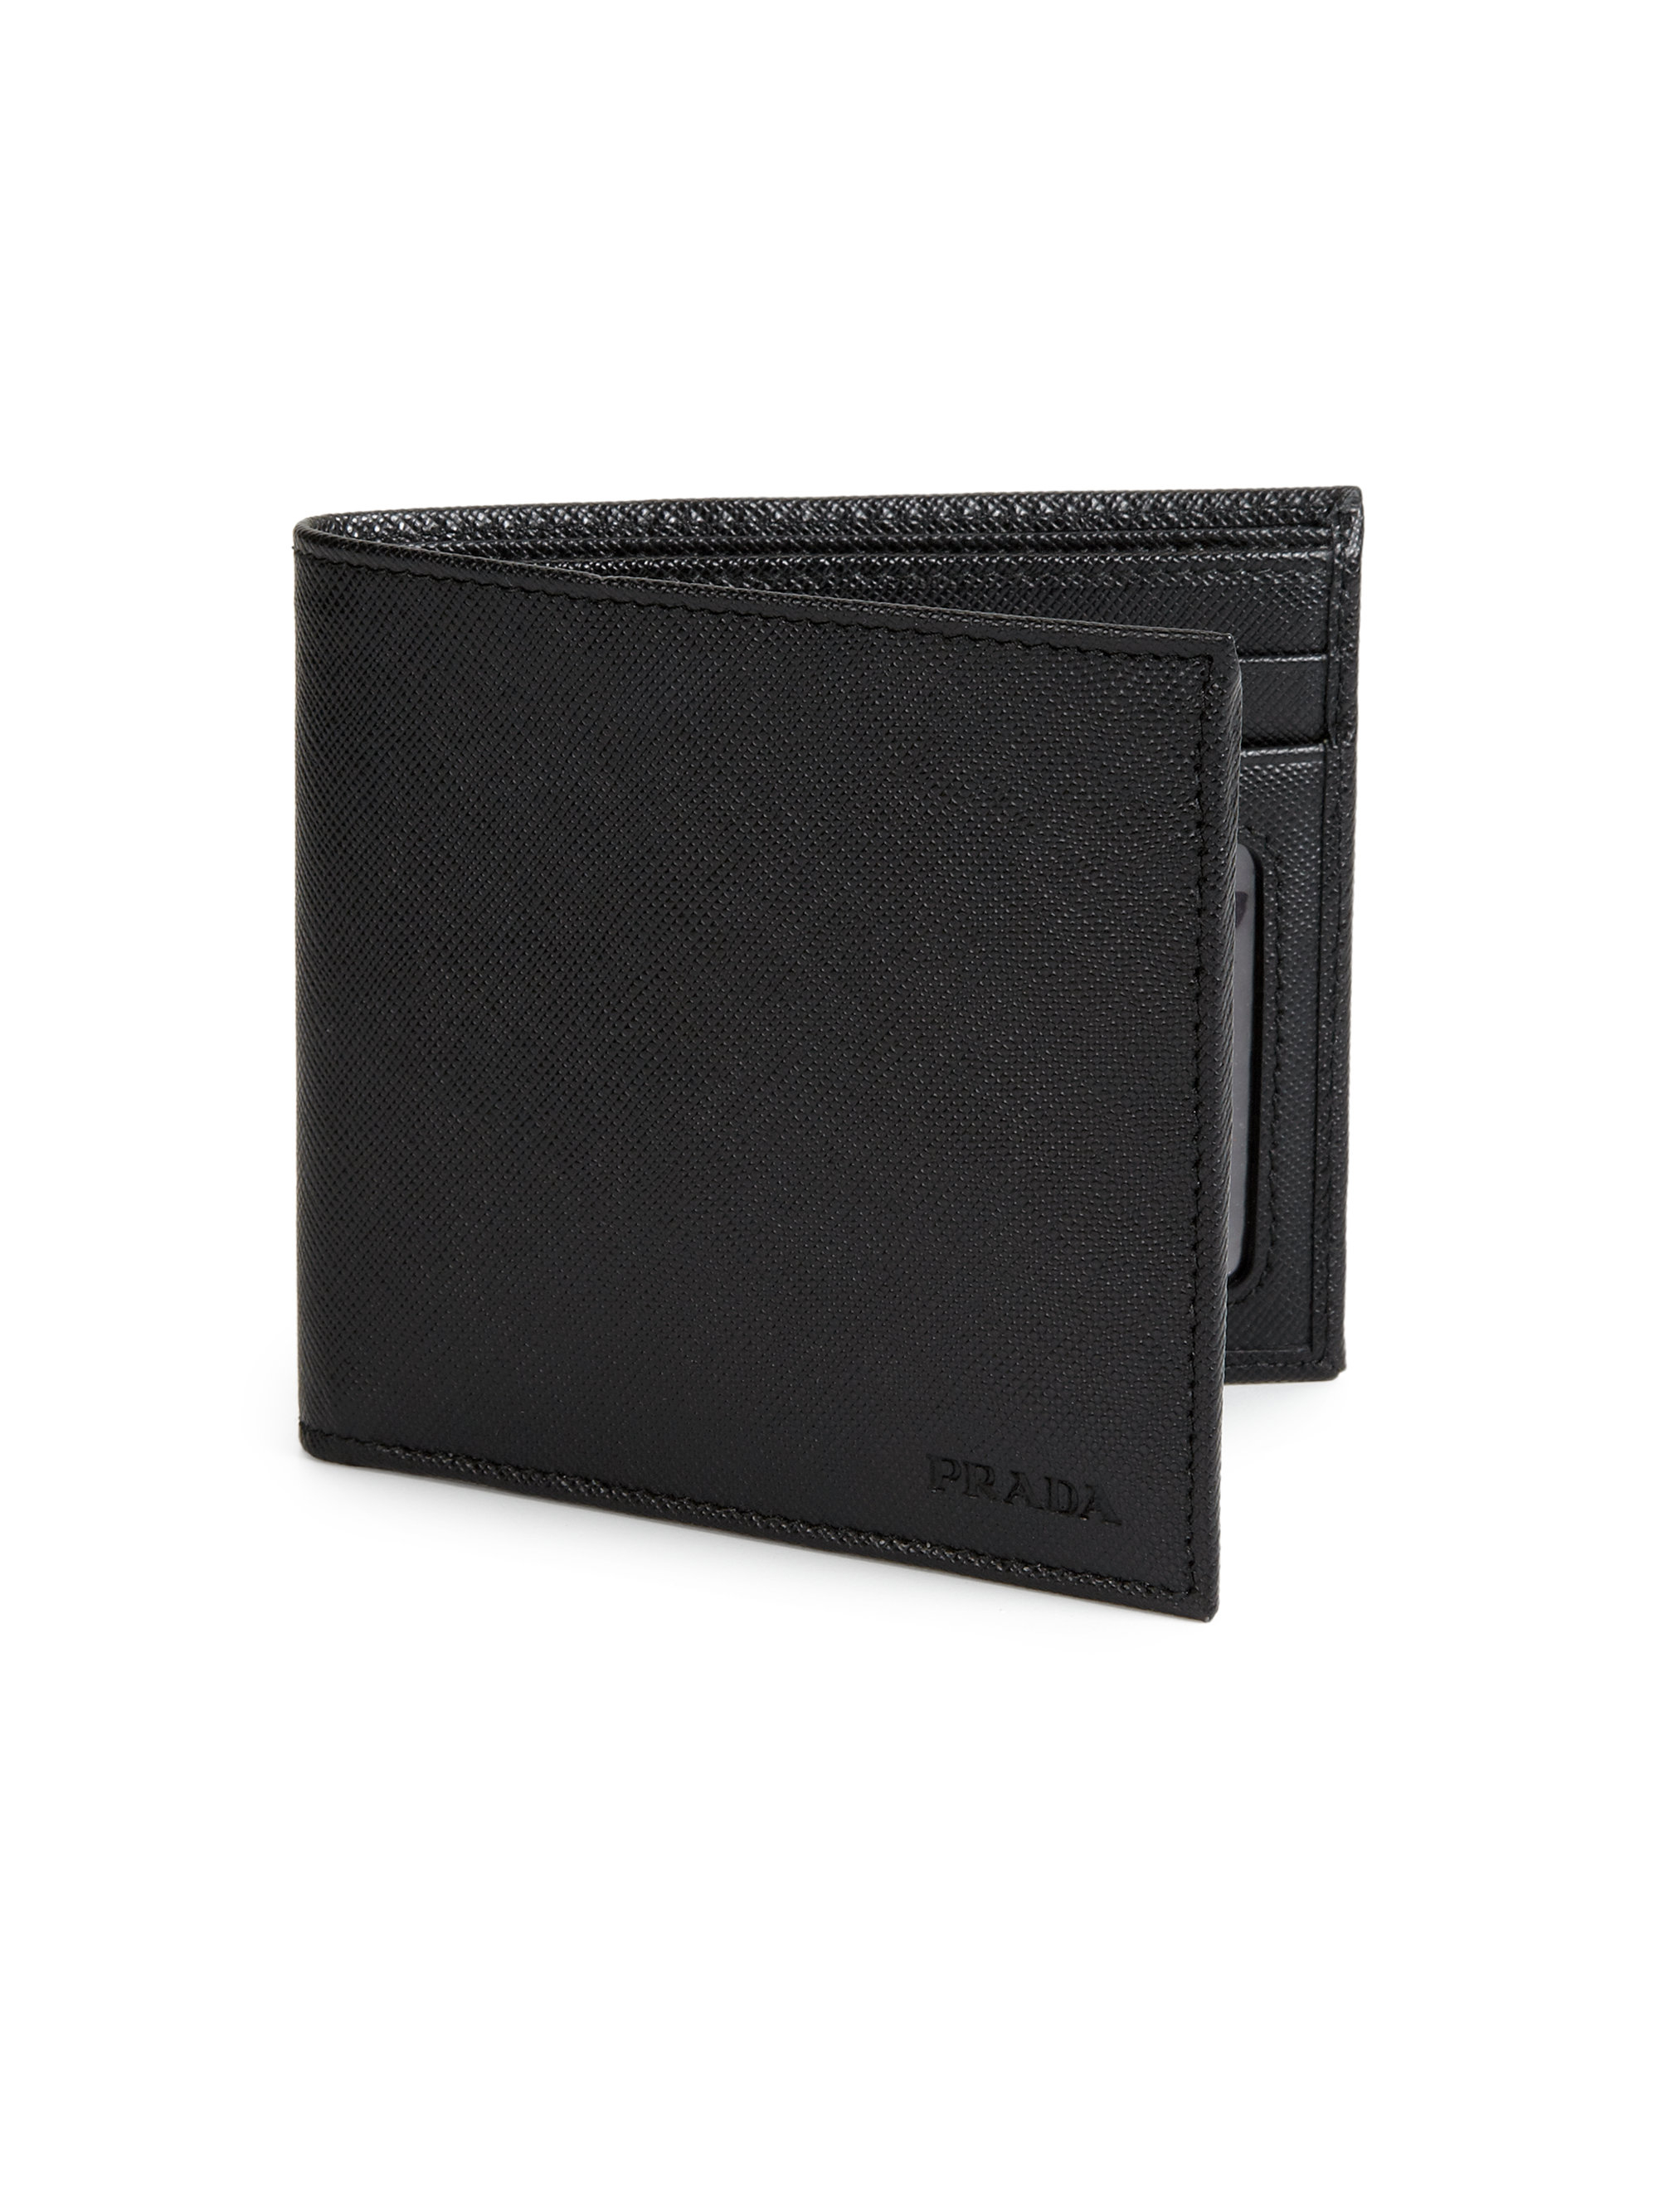 223a05319d41 ... new zealand lyst prada saffiano leather billfold wallet in black for men  4d936 2843f